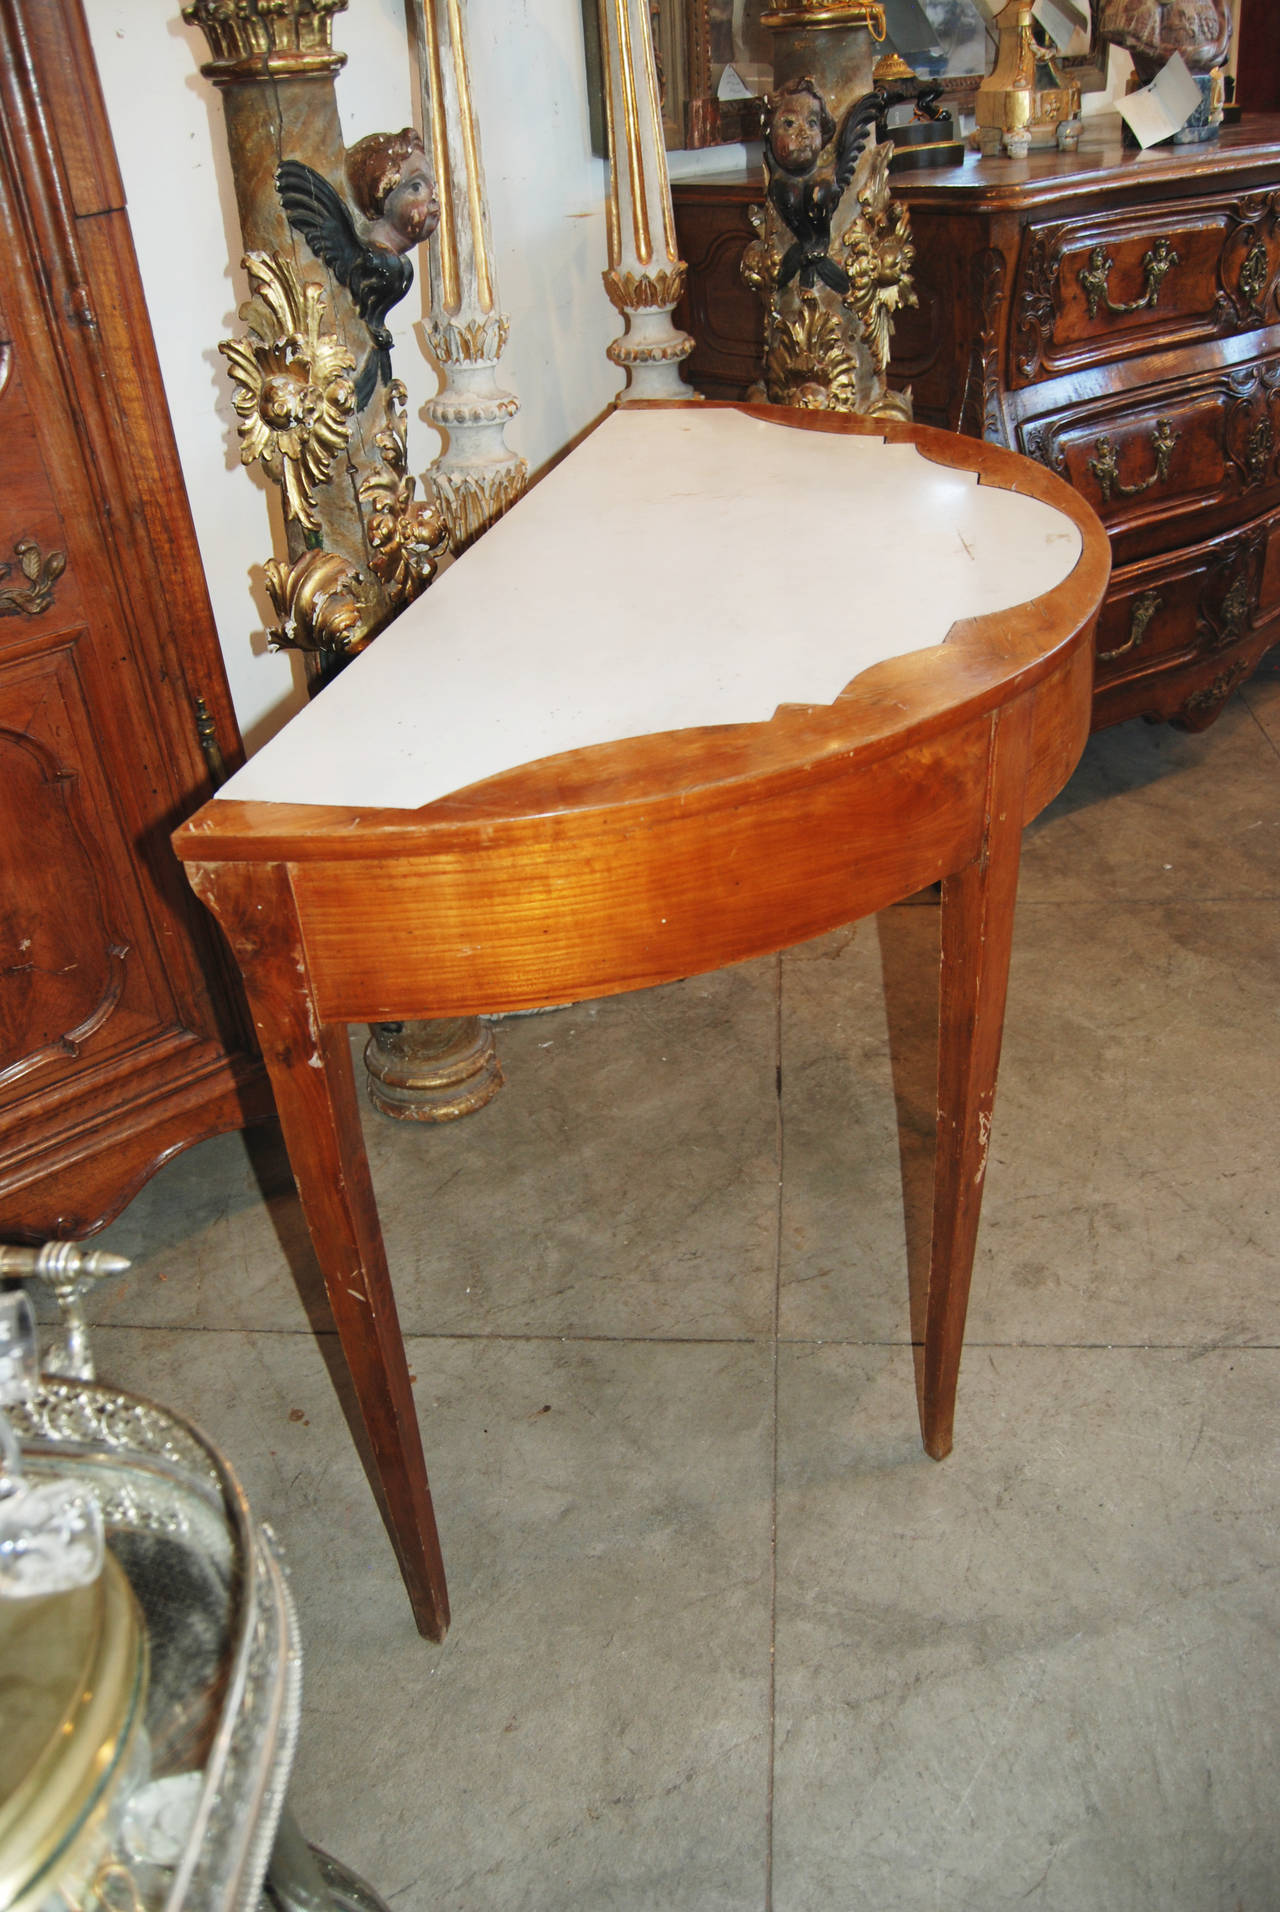 19th Century Italian Directoire Demilune Console In Good Condition For Sale In New Orleans, LA